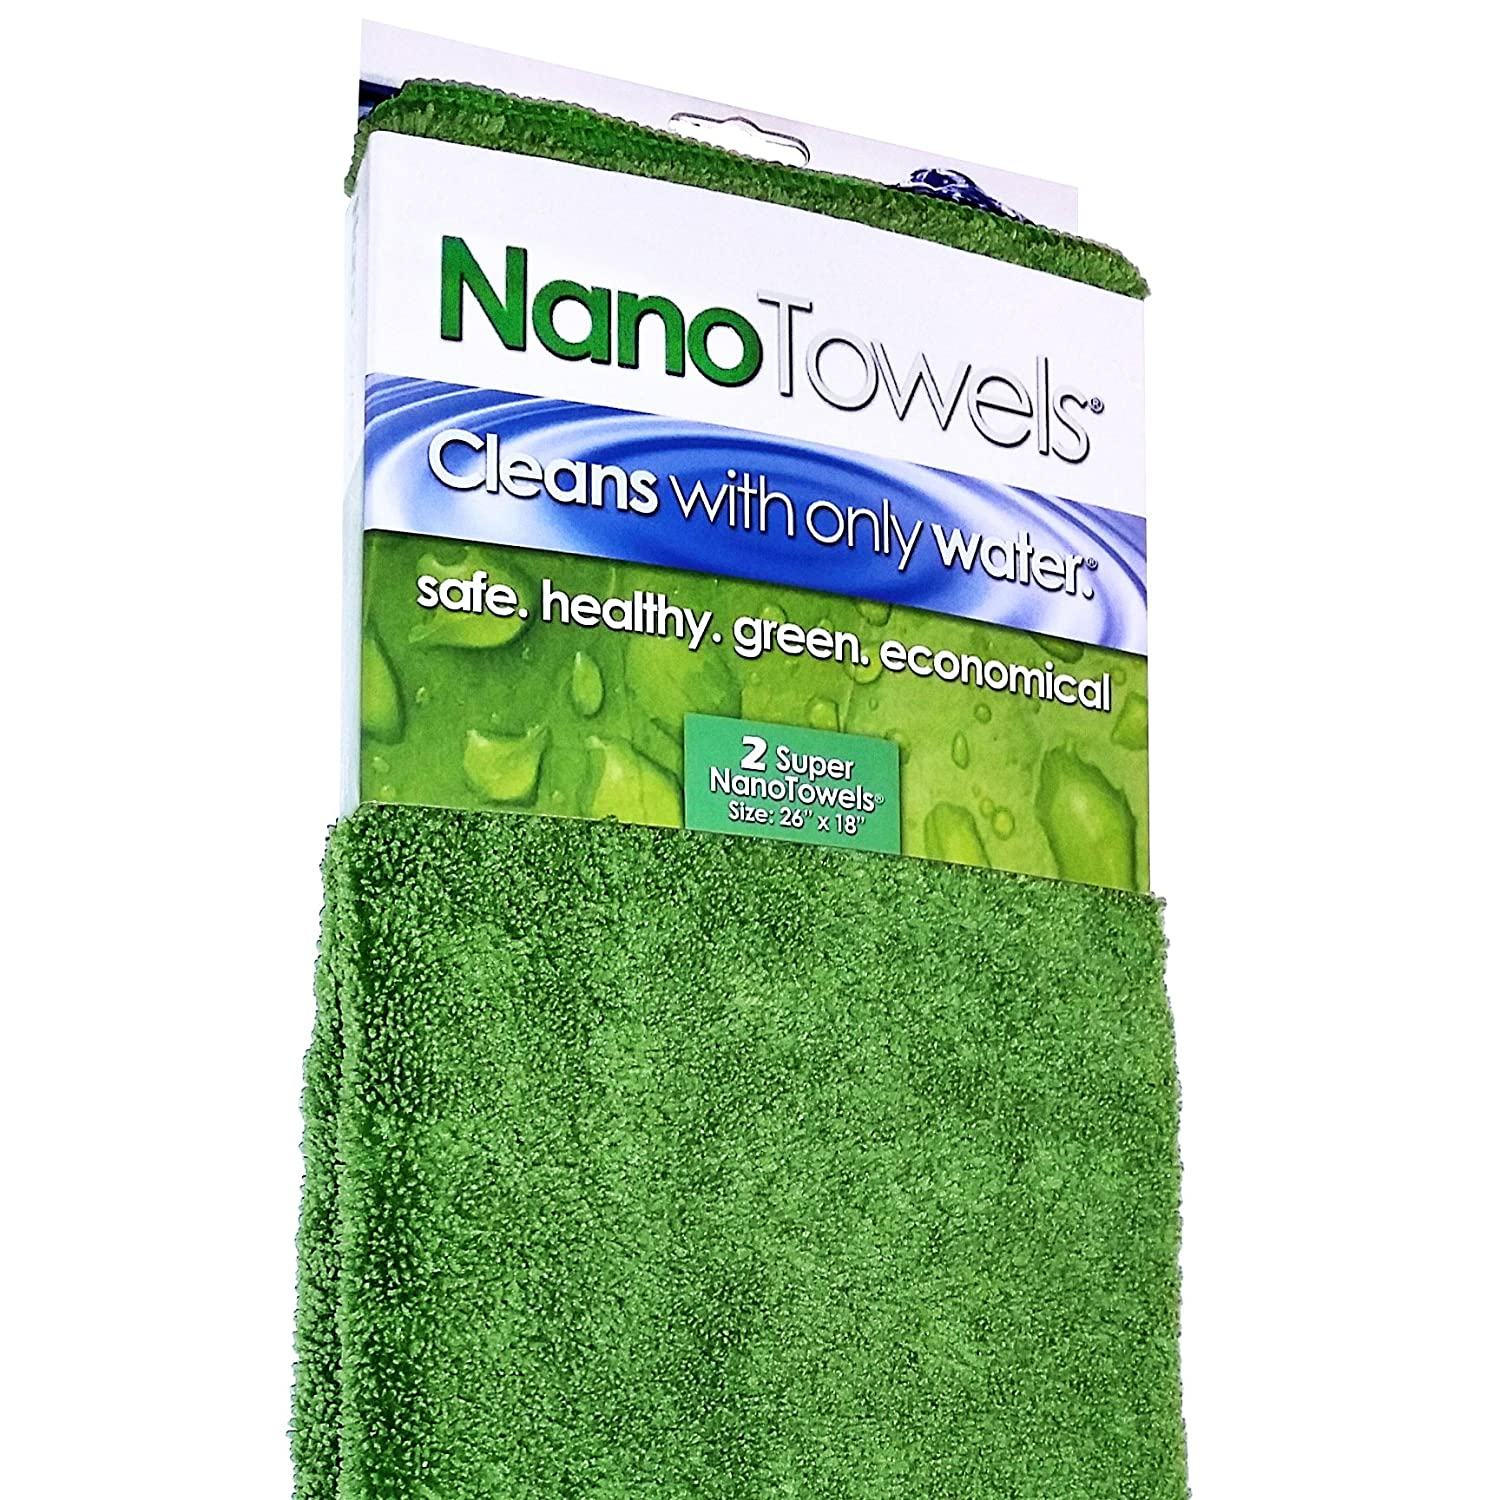 amazon com dish cloths dish towels home kitchen nano towels supersized version the breakthrough fabric that replaces paper towels and toxic chemical cleaners use as bath towels kitchen towels etc